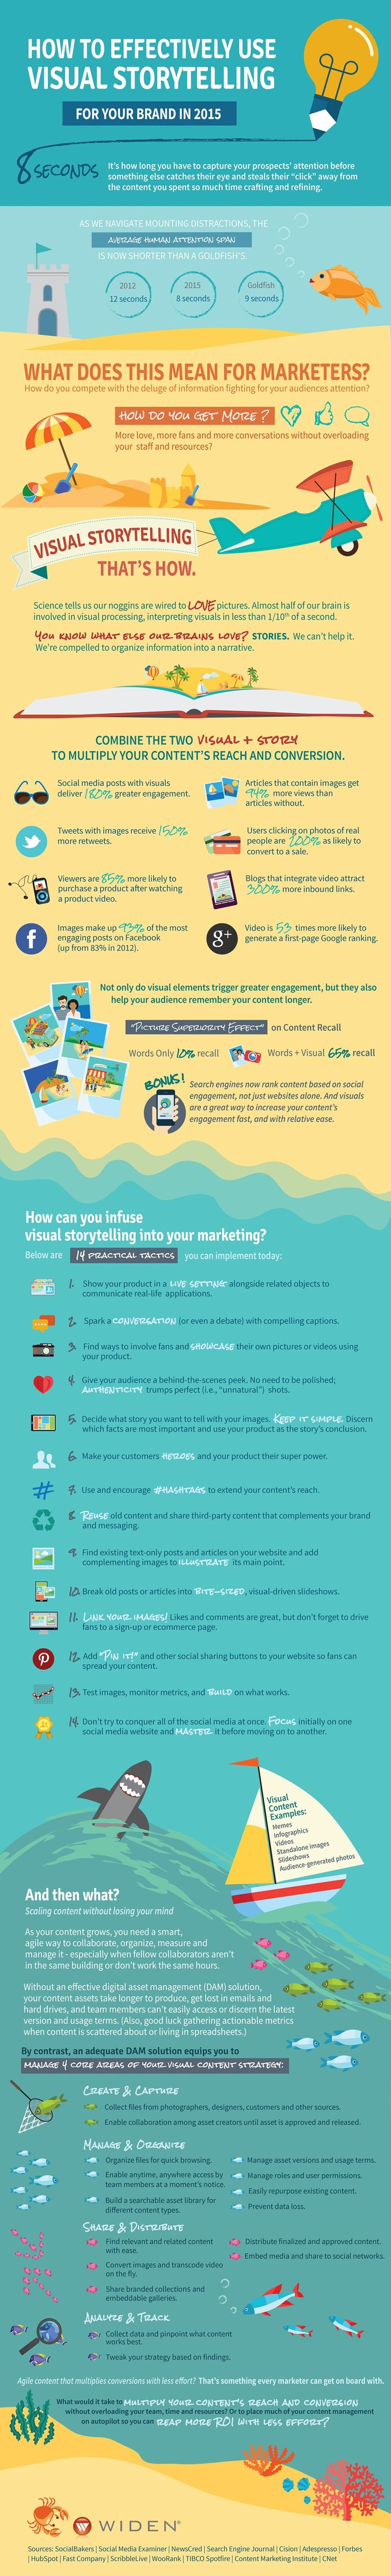 Visual Storytelling May Capture Our Goldfish-Like Attention Spans [INFOGRAPHIC] | Social Media Today